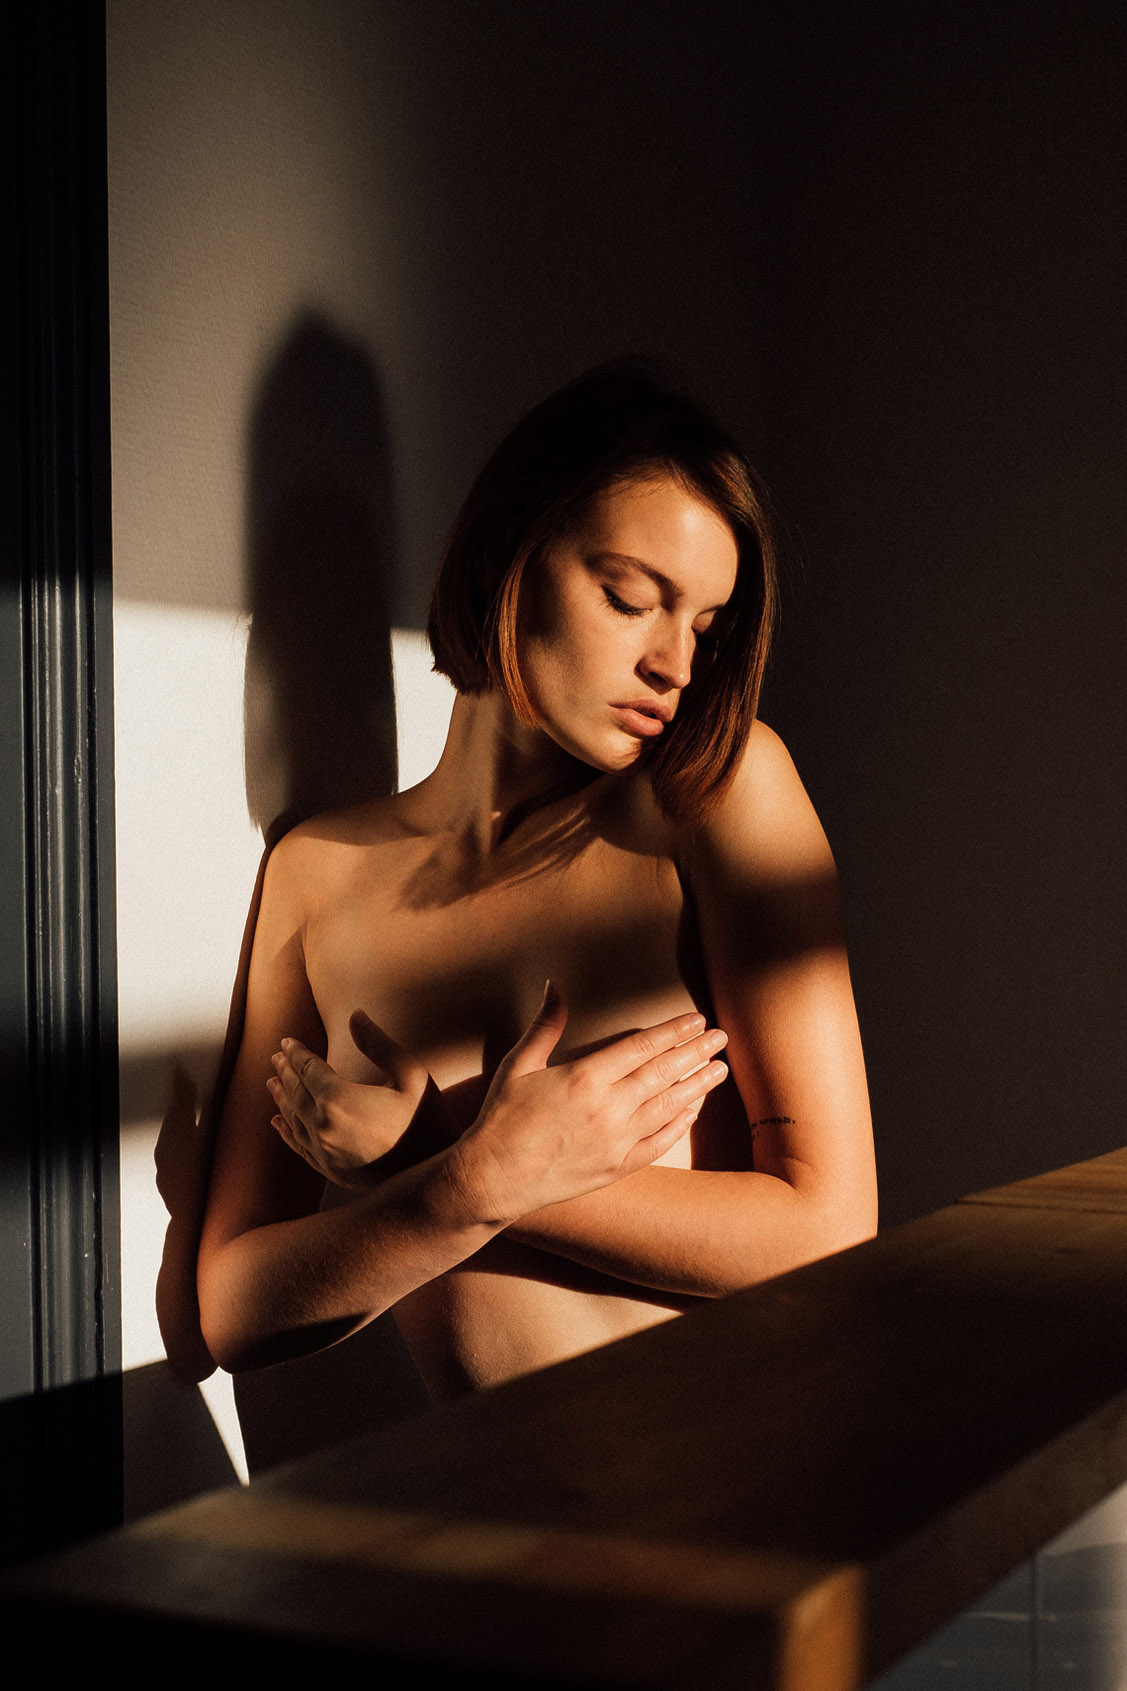 Morning Shadows / Mathilde Wnr by Julien LRVR / Yume Magazine